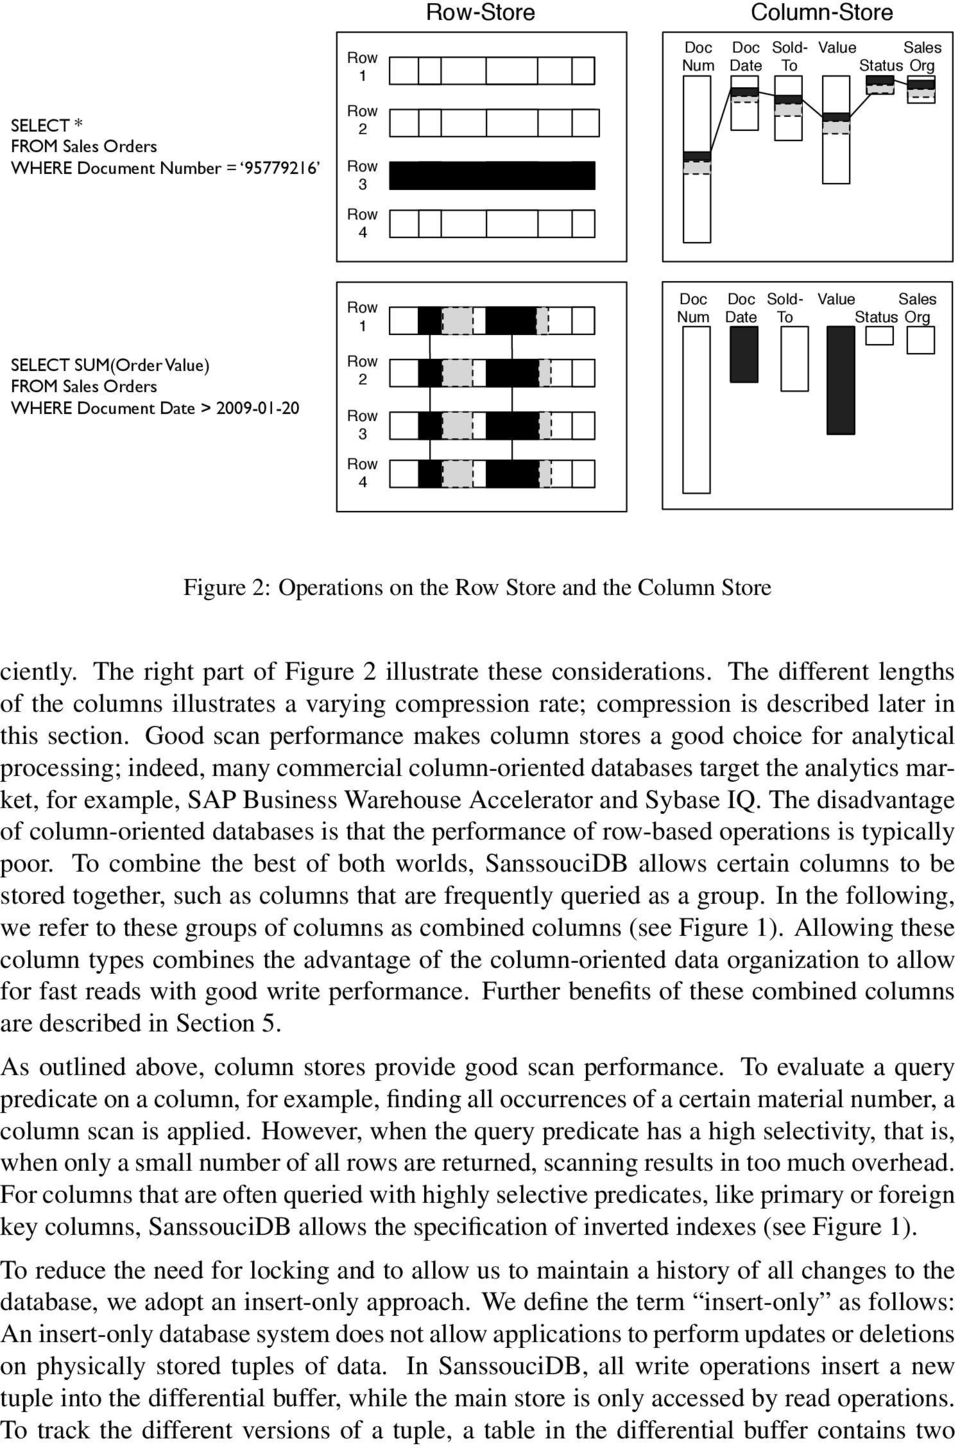 The right part of Figure 2 illustrate these considerations. The different lengths of the columns illustrates a varying compression rate; compression is described later in this section.